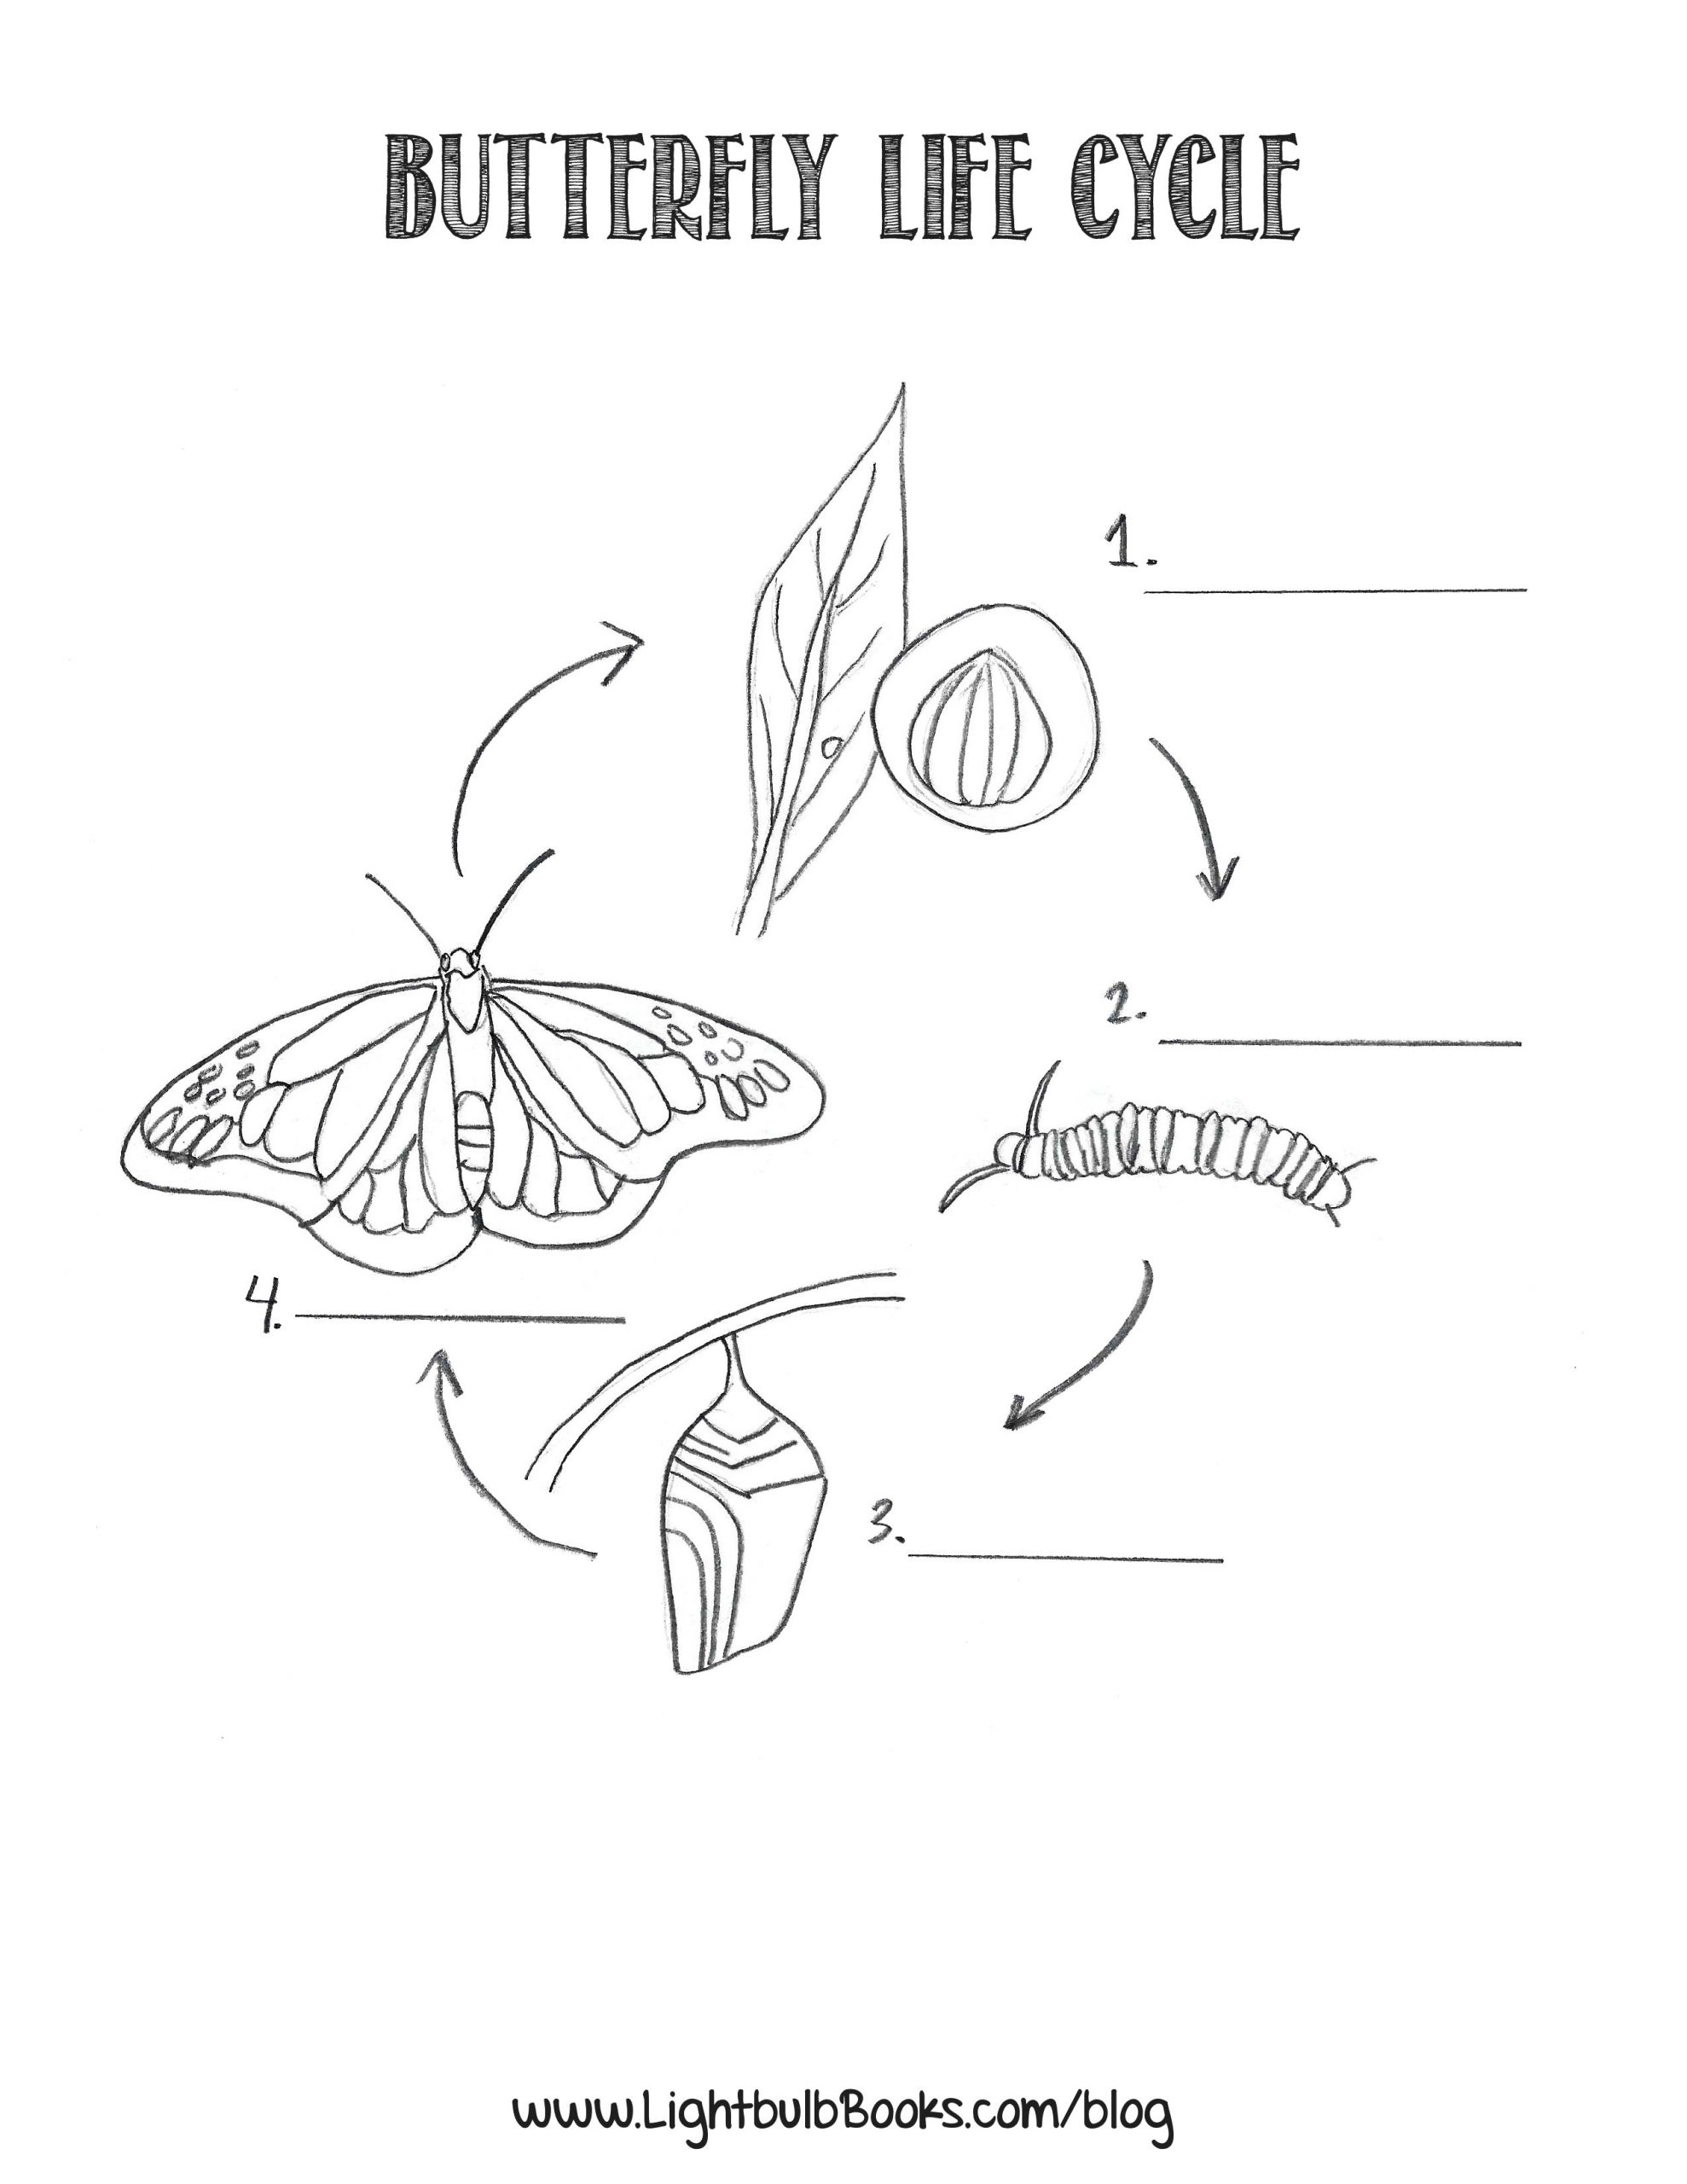 Butterfly Life Cycle Worksheet 2 the Life Cycle Of A butterfly